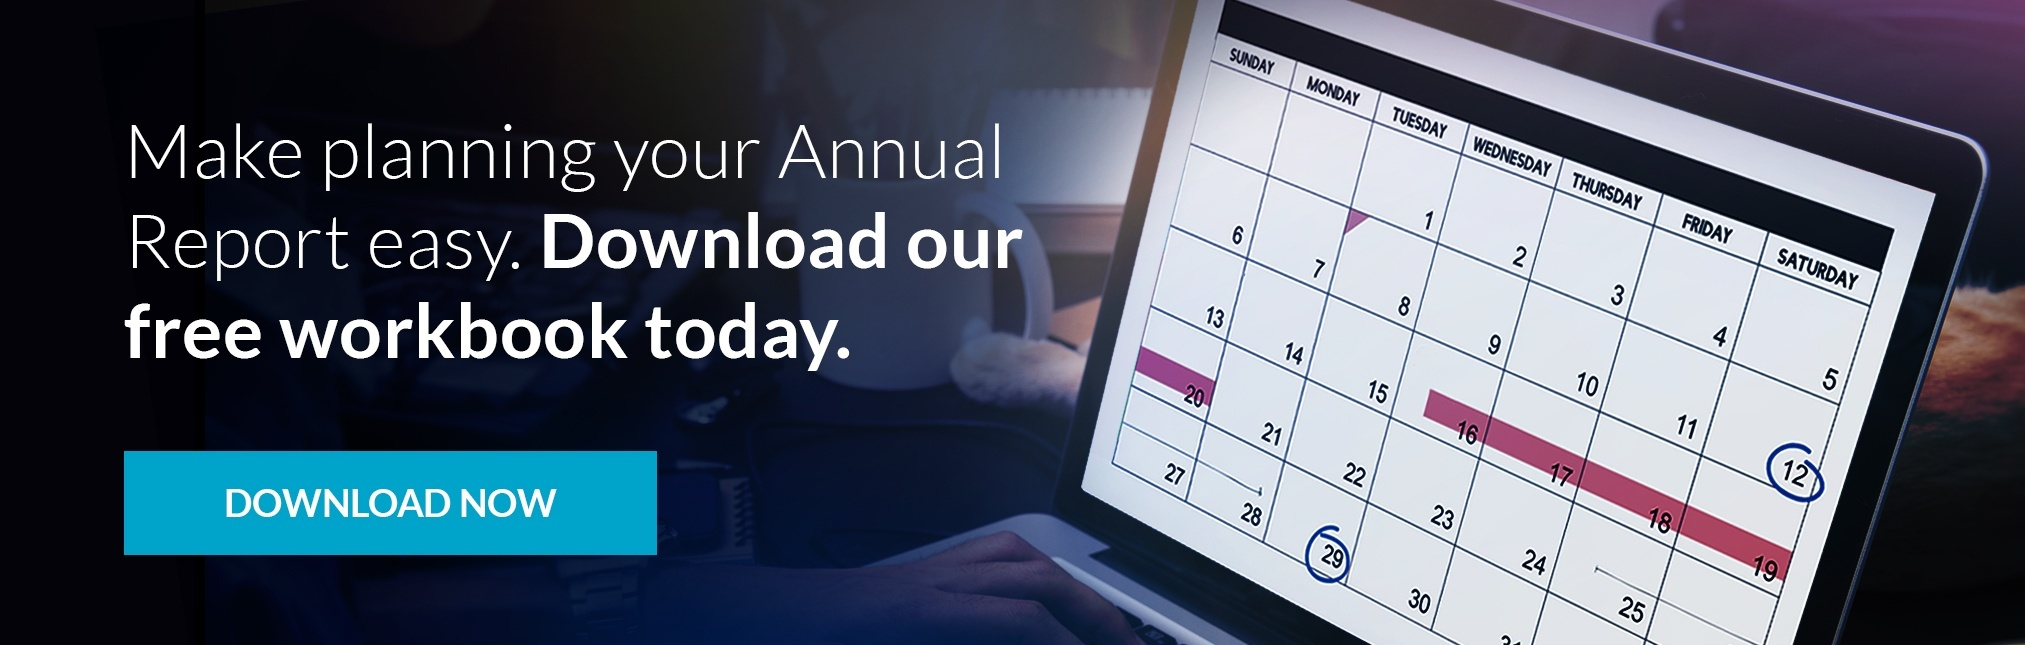 Read More About Annual Reports